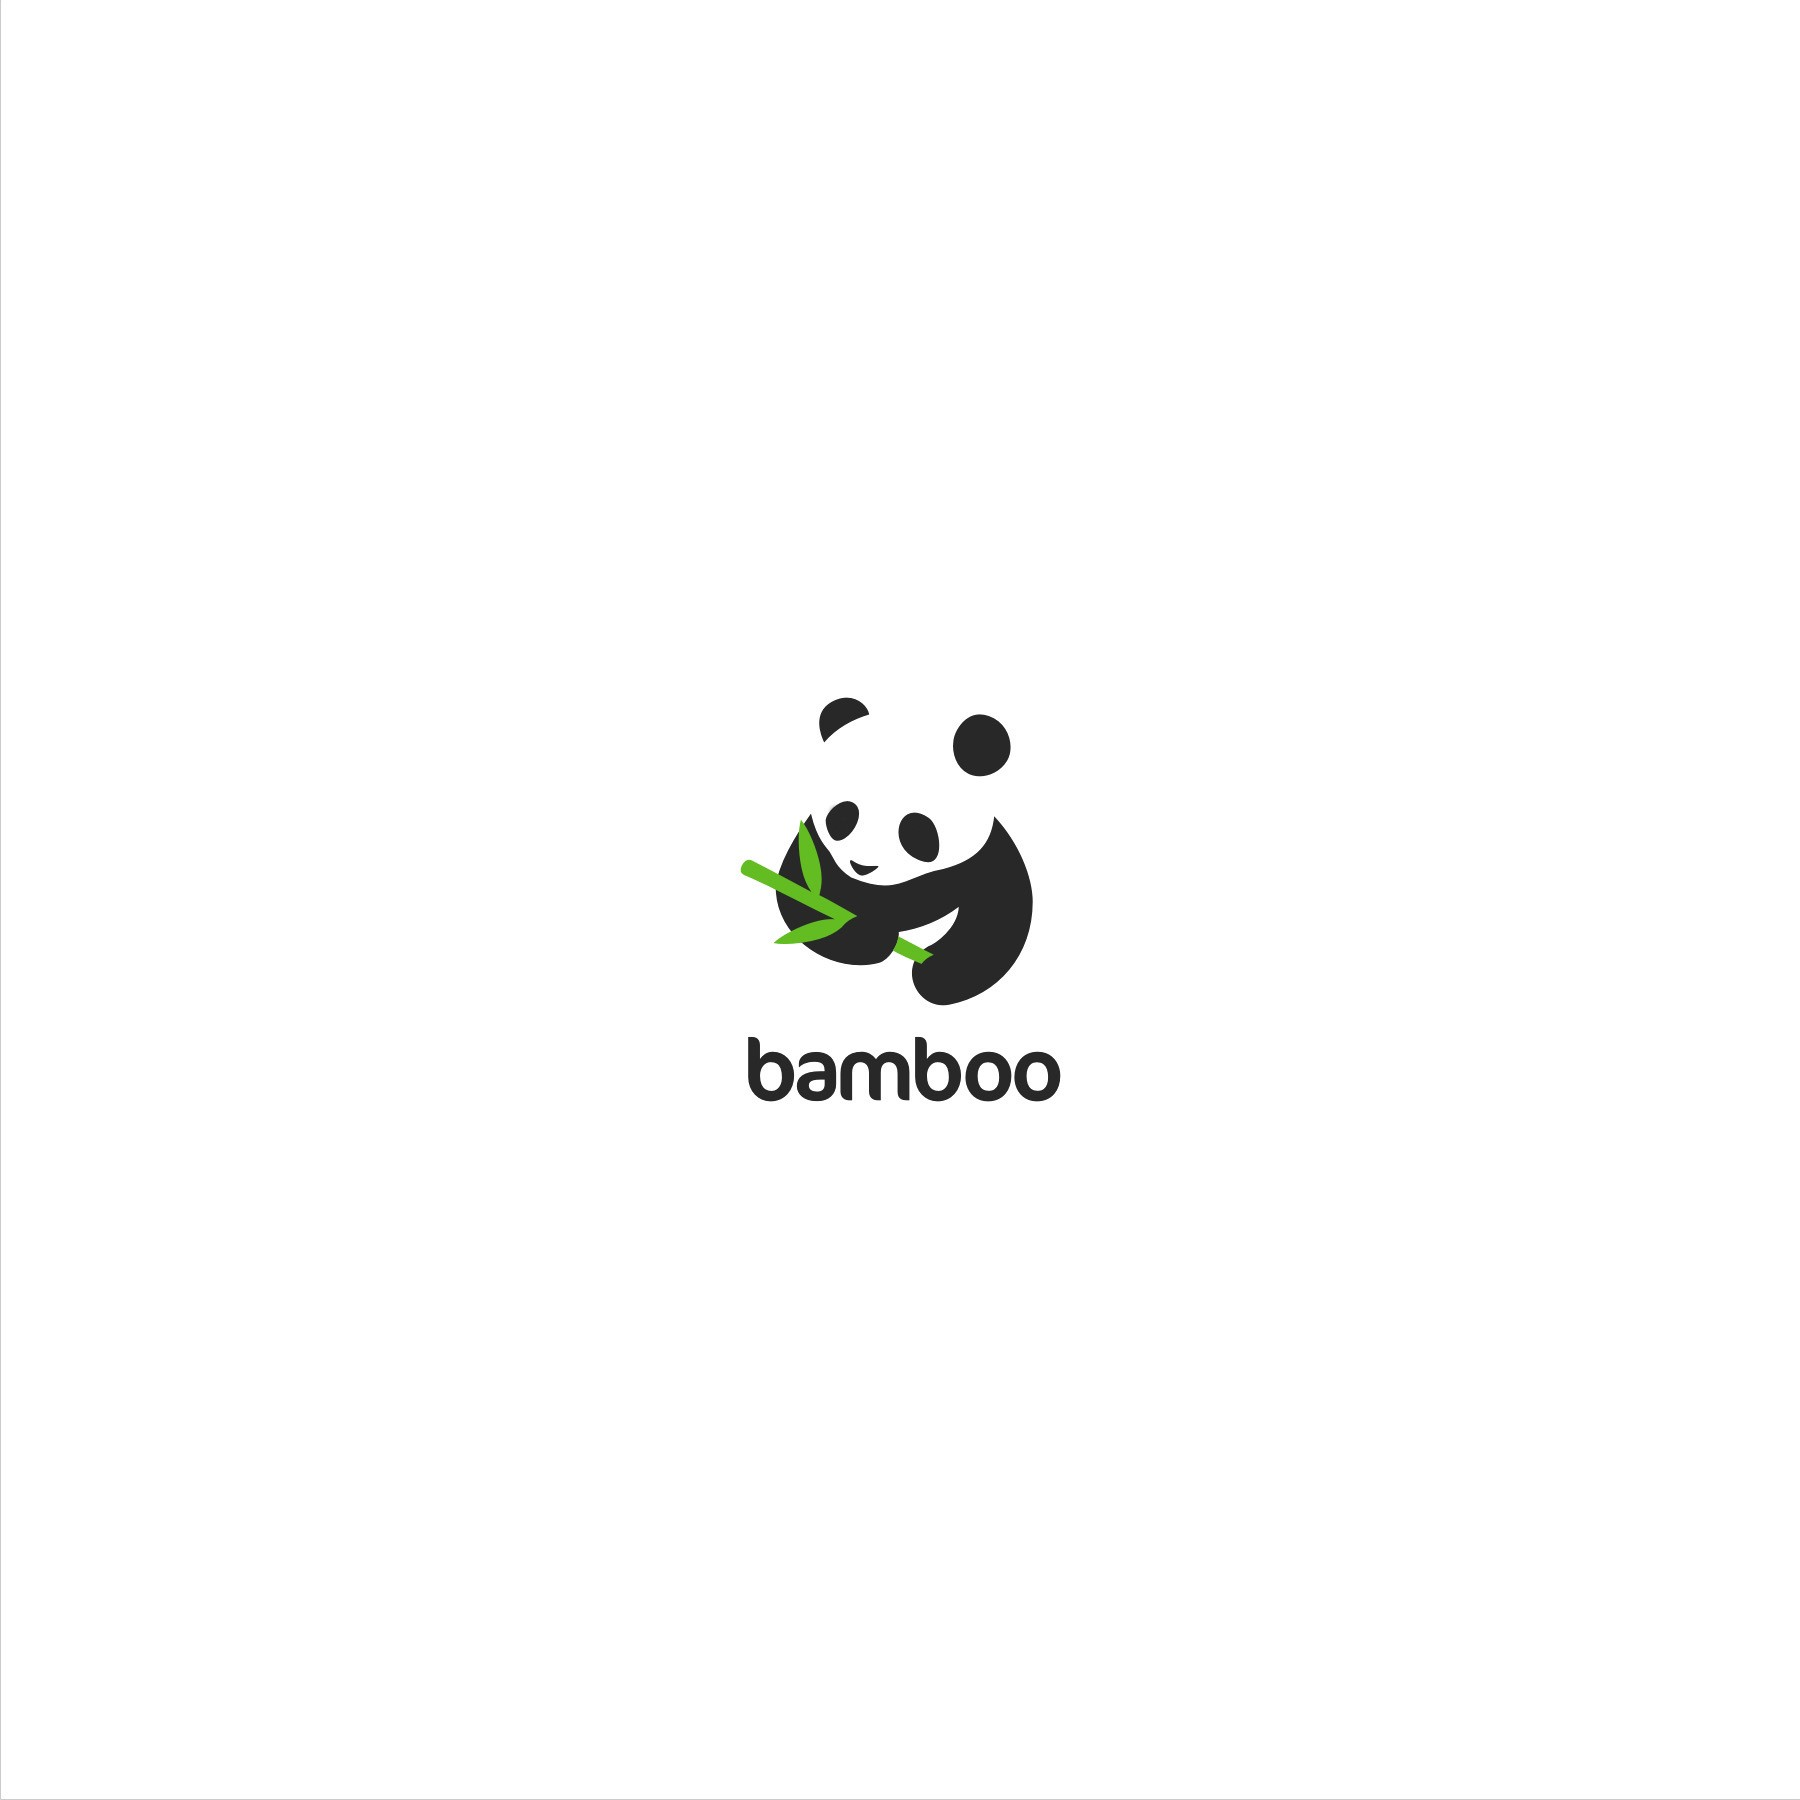 Panda/Bamboo logo for a Non-profit smart phone app